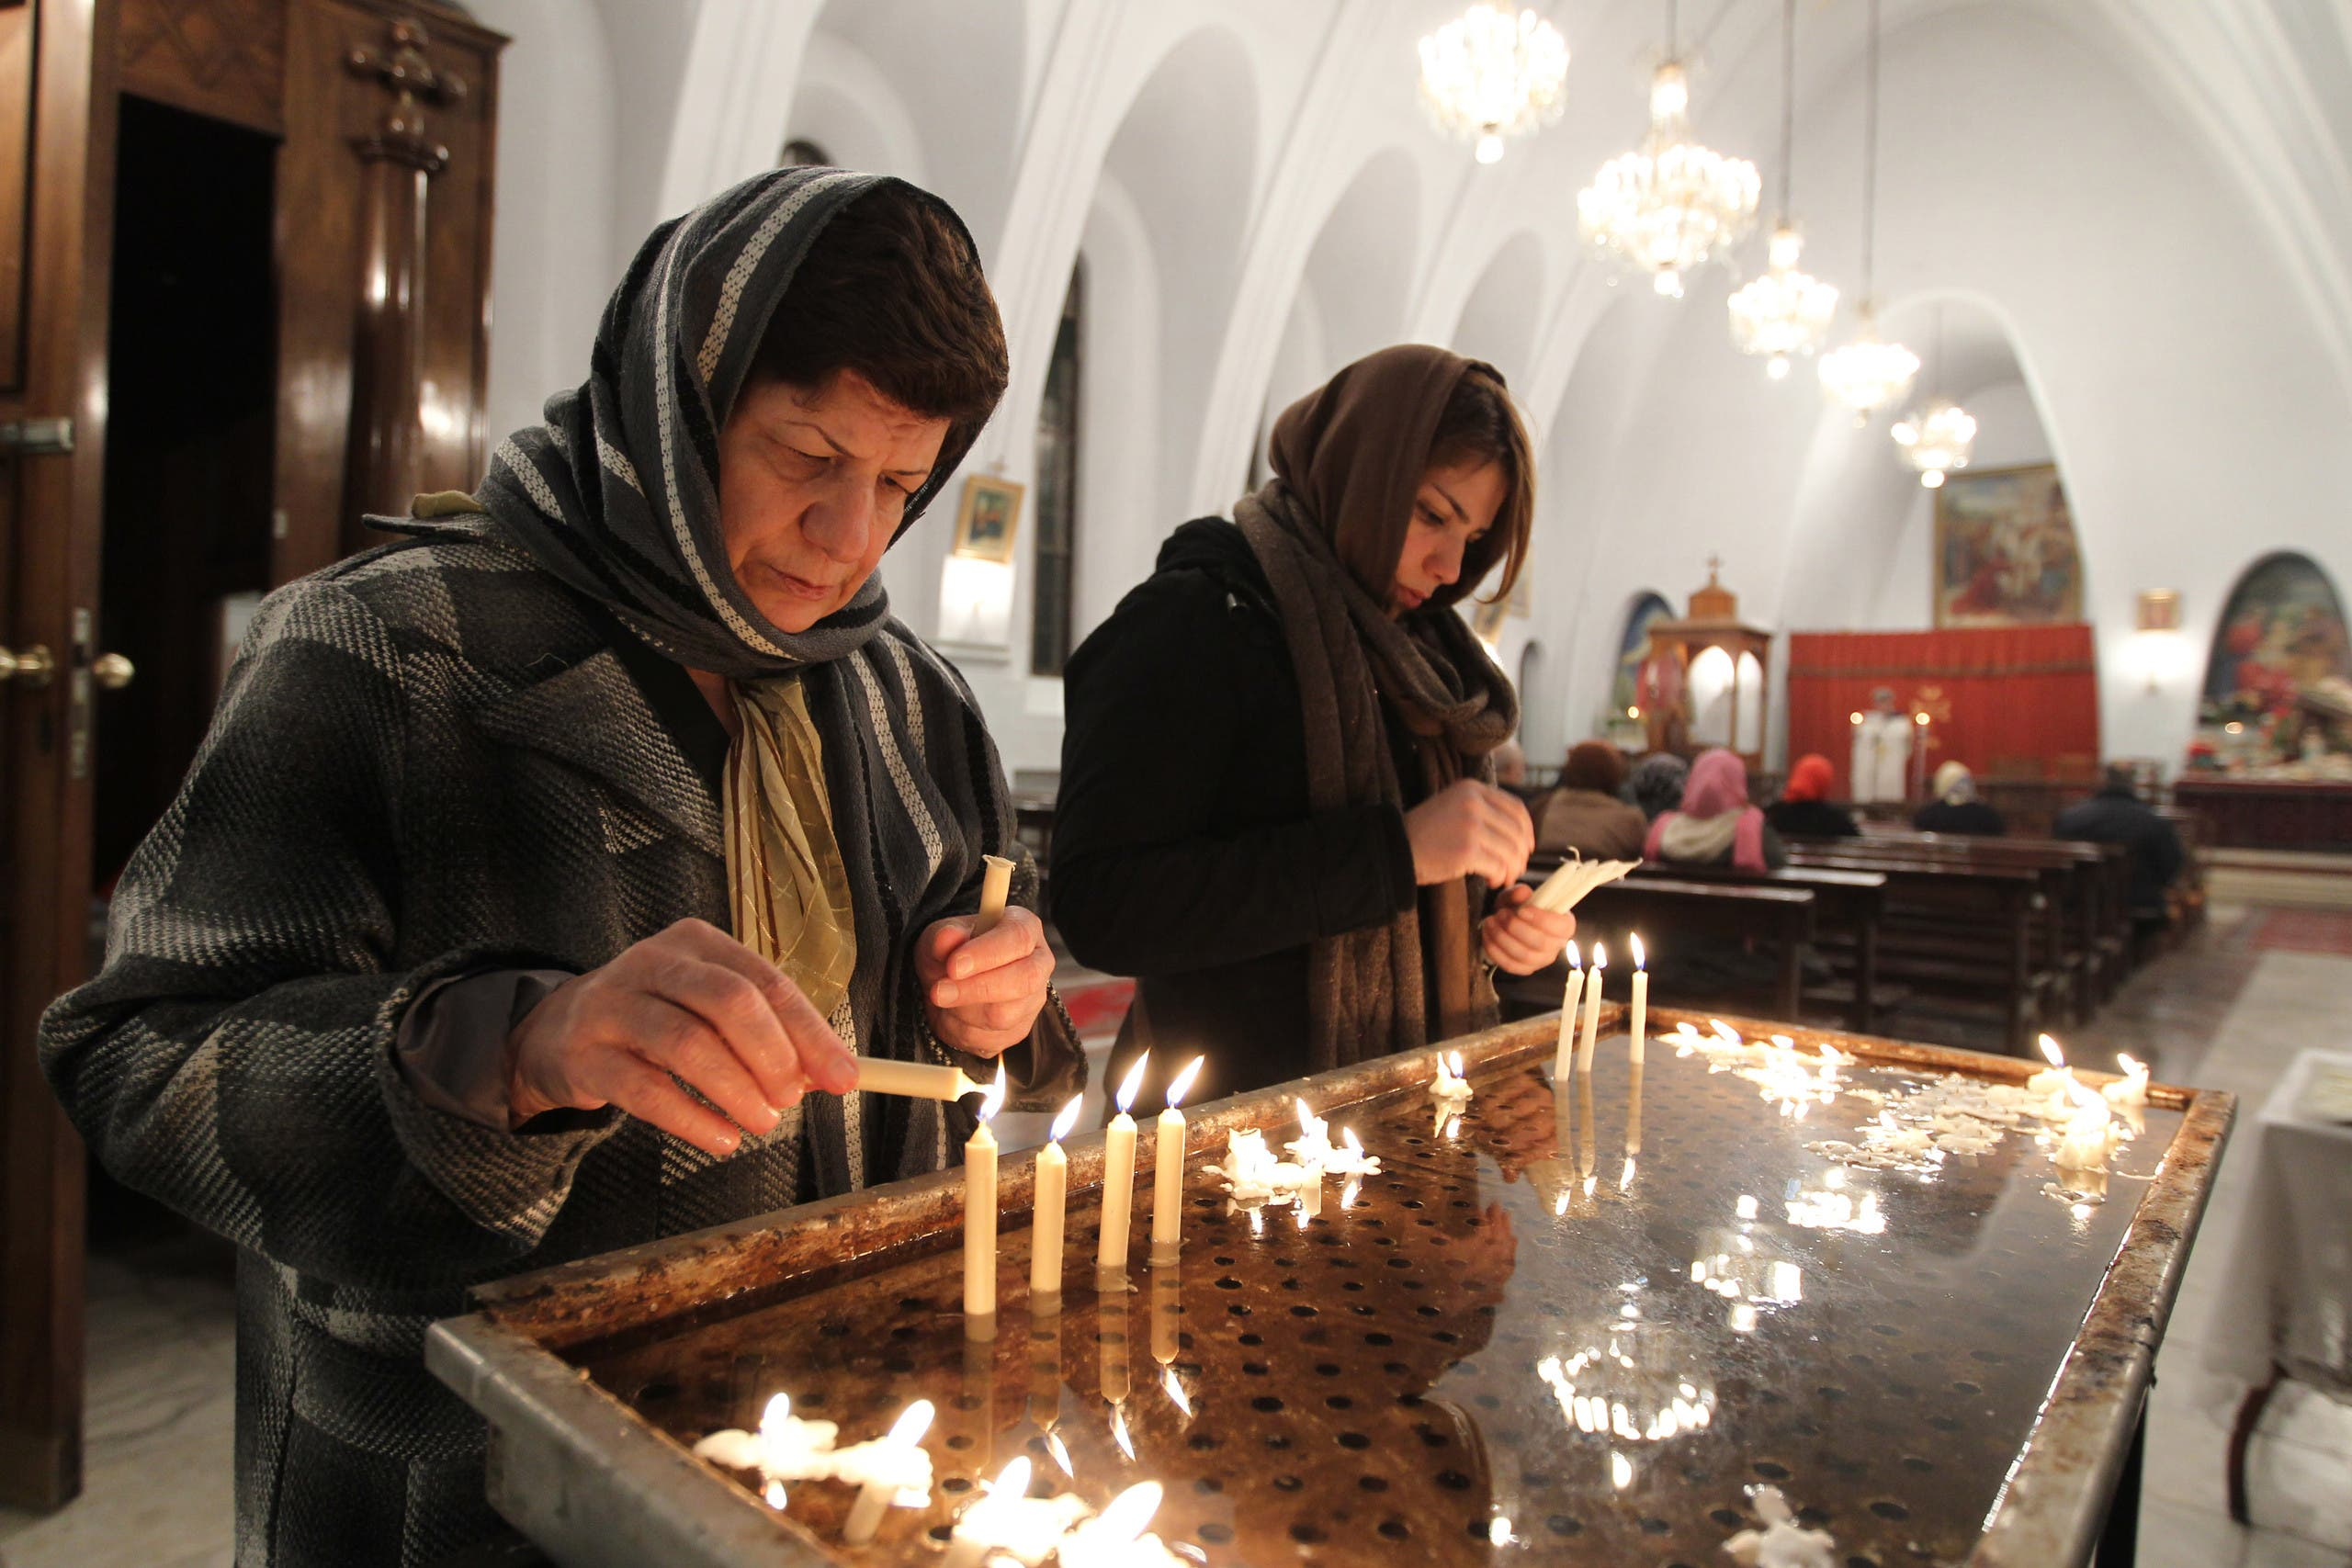 Iranian Christian women light candles at the St. Gregor Armenian Catholic church in Tehran on December 24, 2011. (File photo: AP)